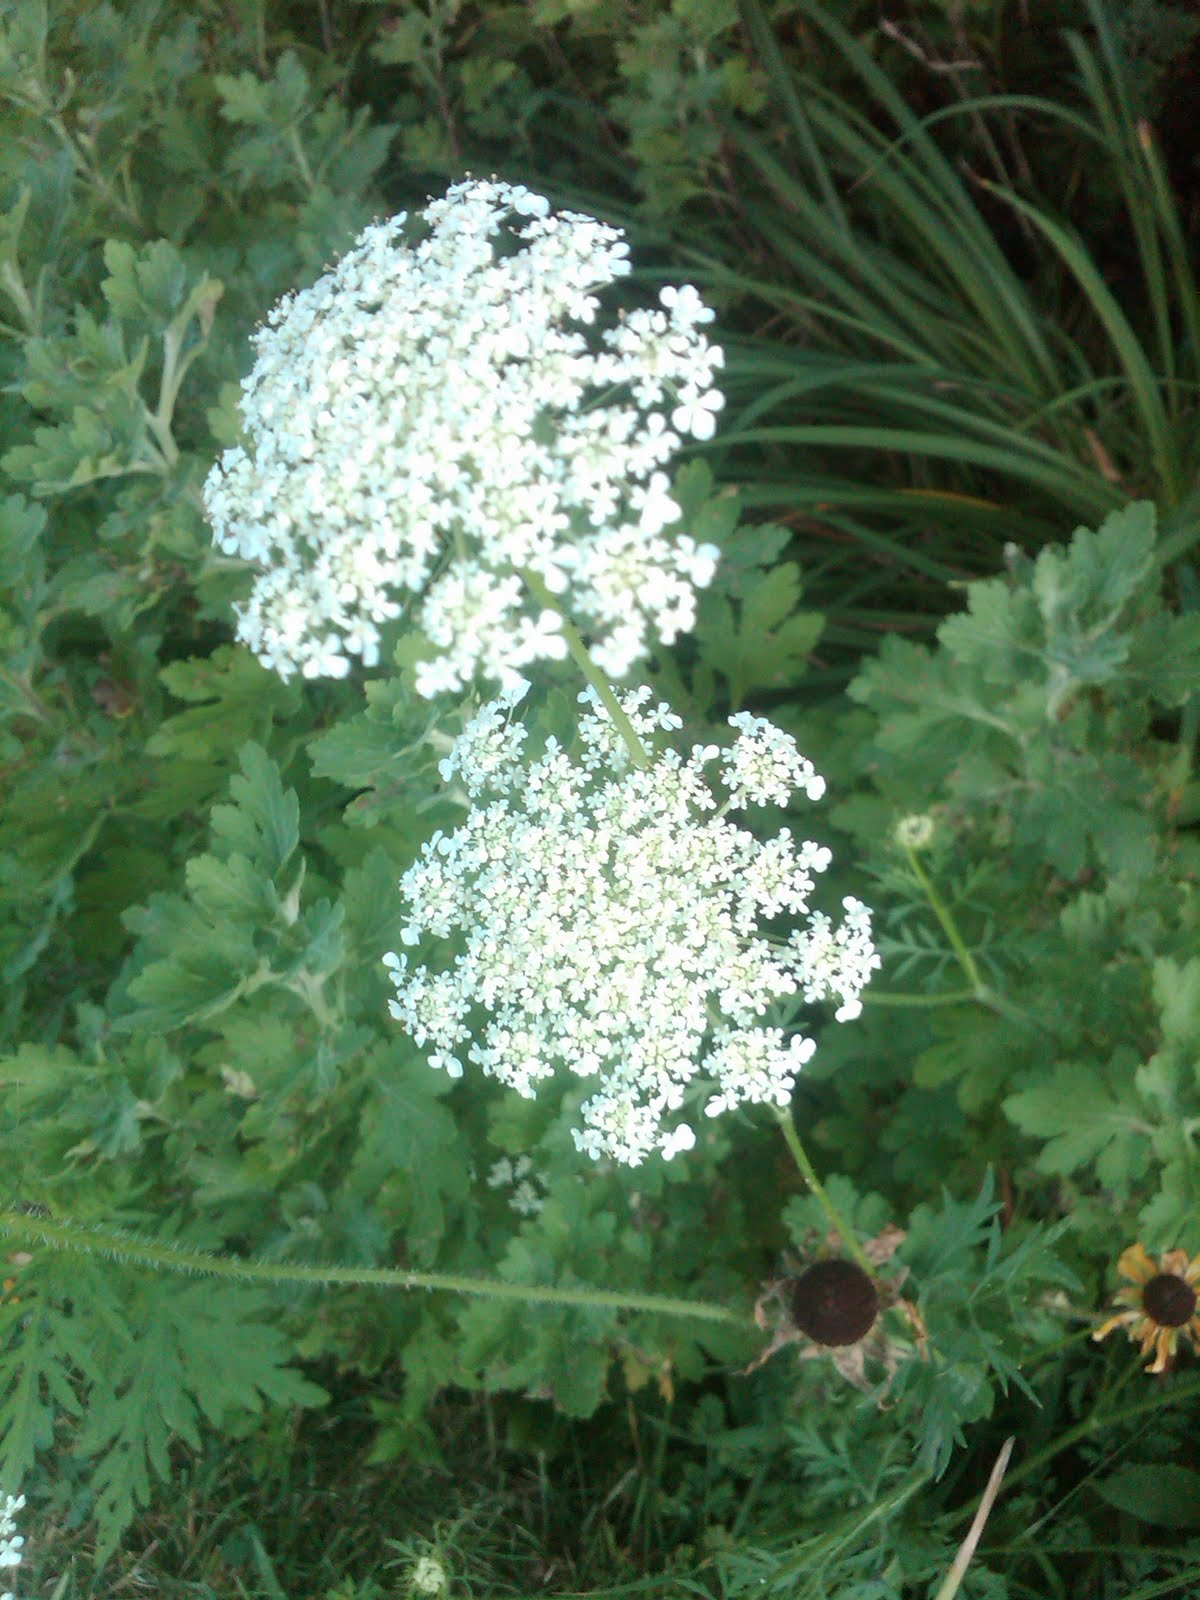 Best pictures of weeds with white flowers ideas images for wedding famous weeds with white flowers contemporary images for wedding mightylinksfo Choice Image